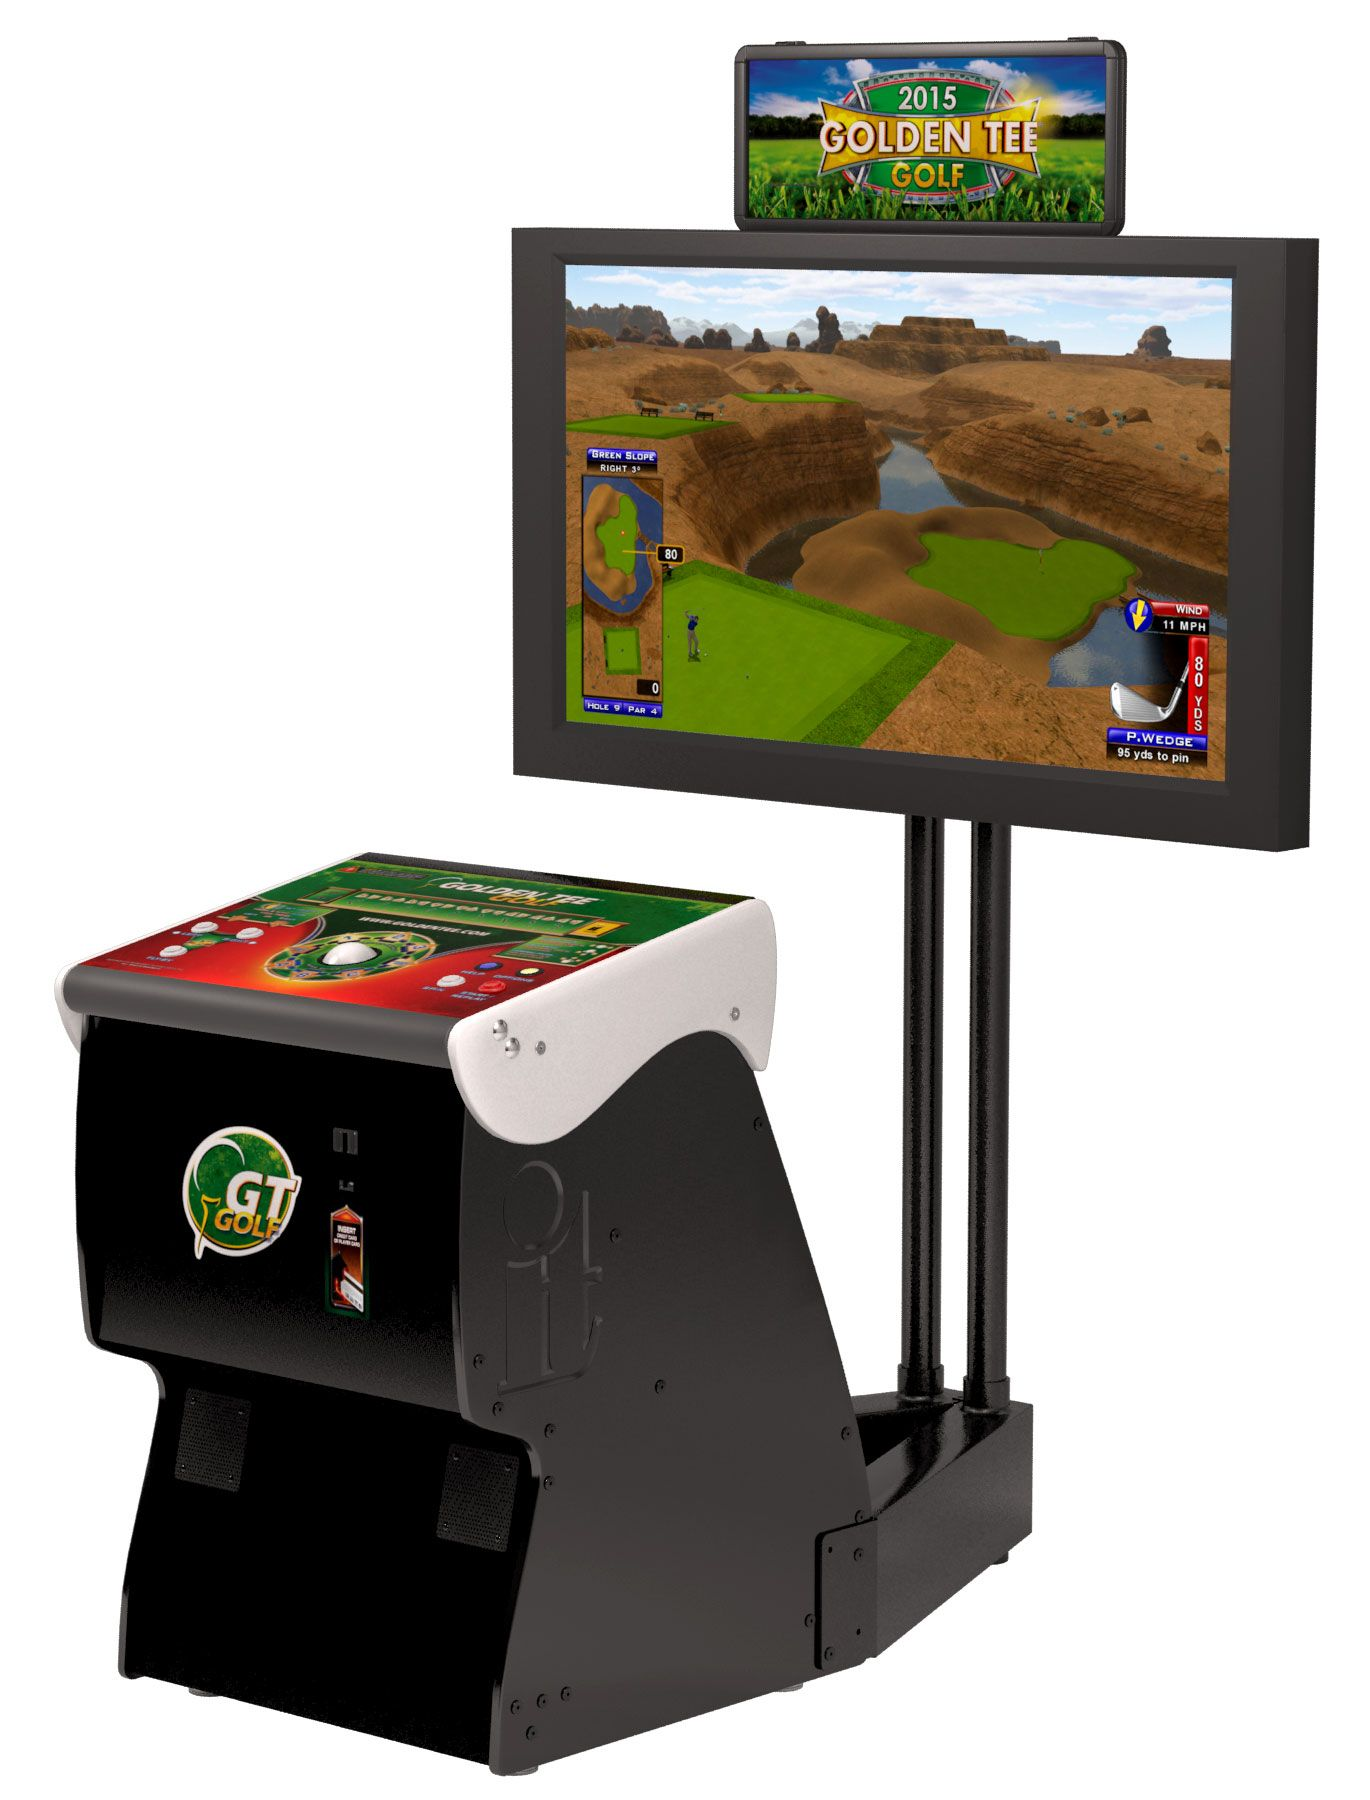 2016 Golden Tee Golf Home Arcade Game With Monitor Stand